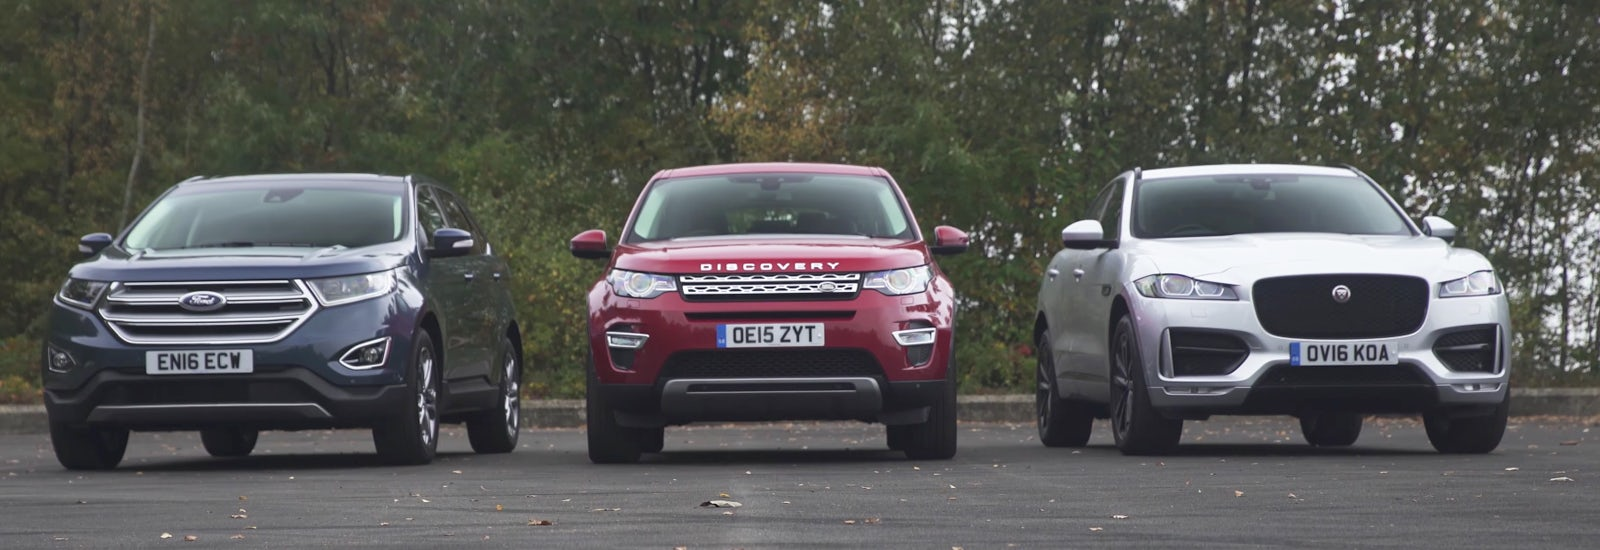 Jaguar f pace vs land rover discovery sport vs ford edge prices